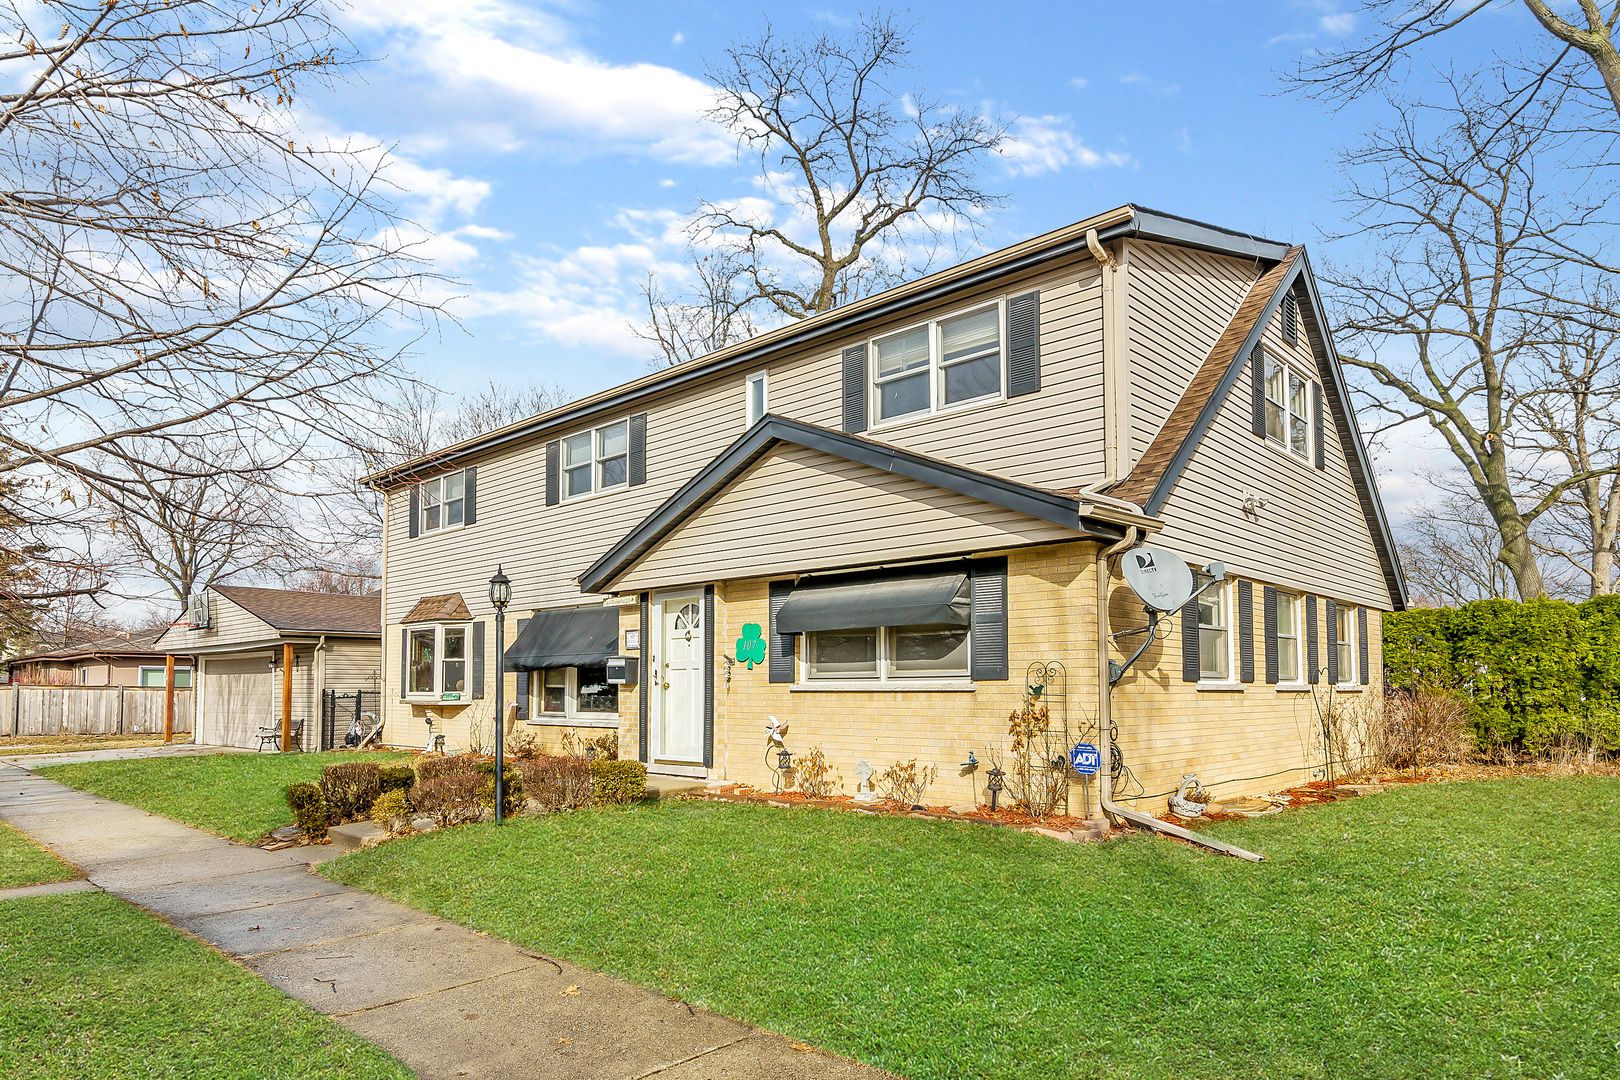 107 South Rose Avenue, Park Ridge in Cook County, IL 60068 Home for Sale